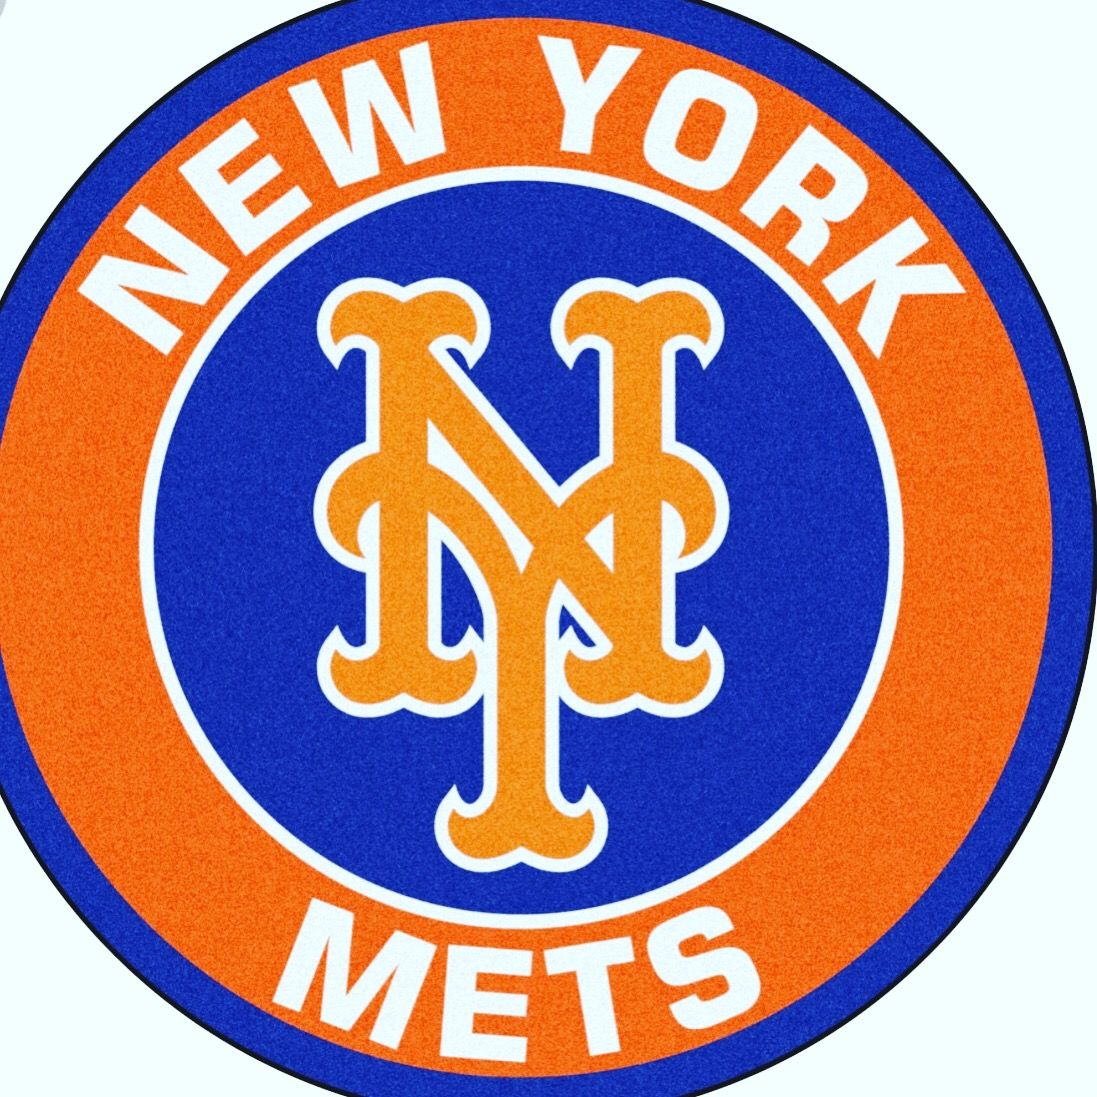 Pin by Tommy ross on teams Sports betting, Mets, New